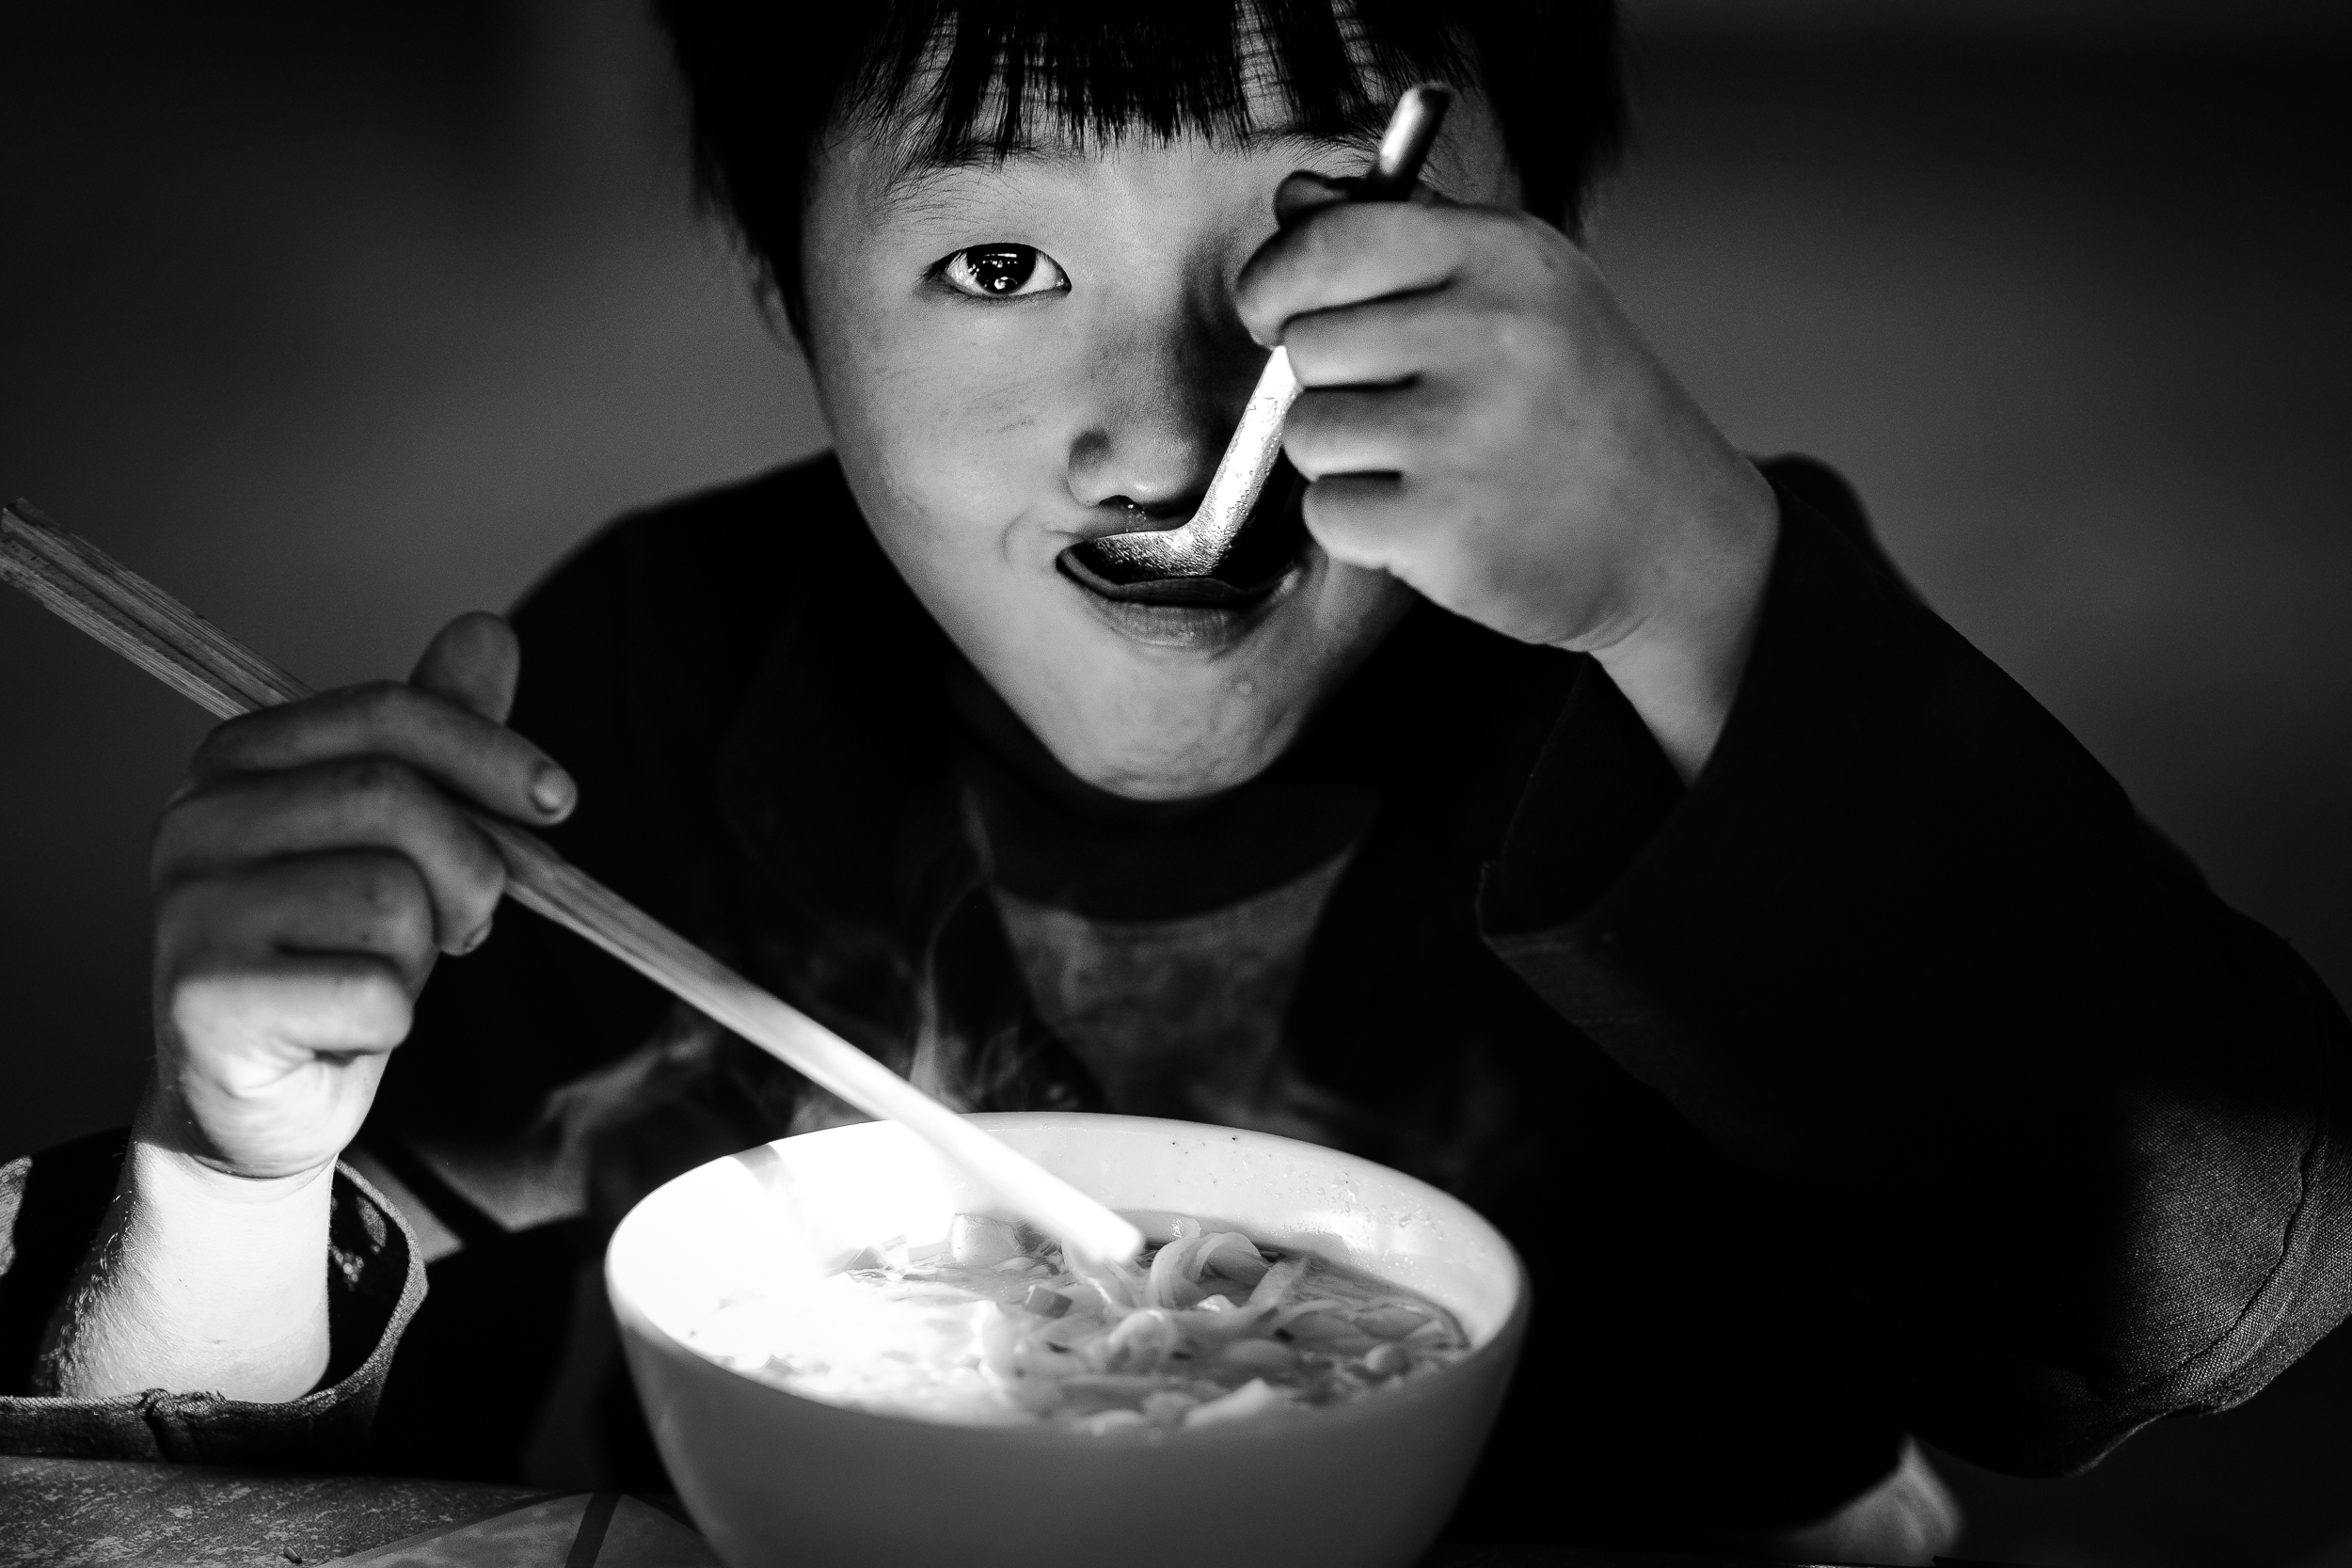 A young boy having pho noodles in Dong van market in northern vi